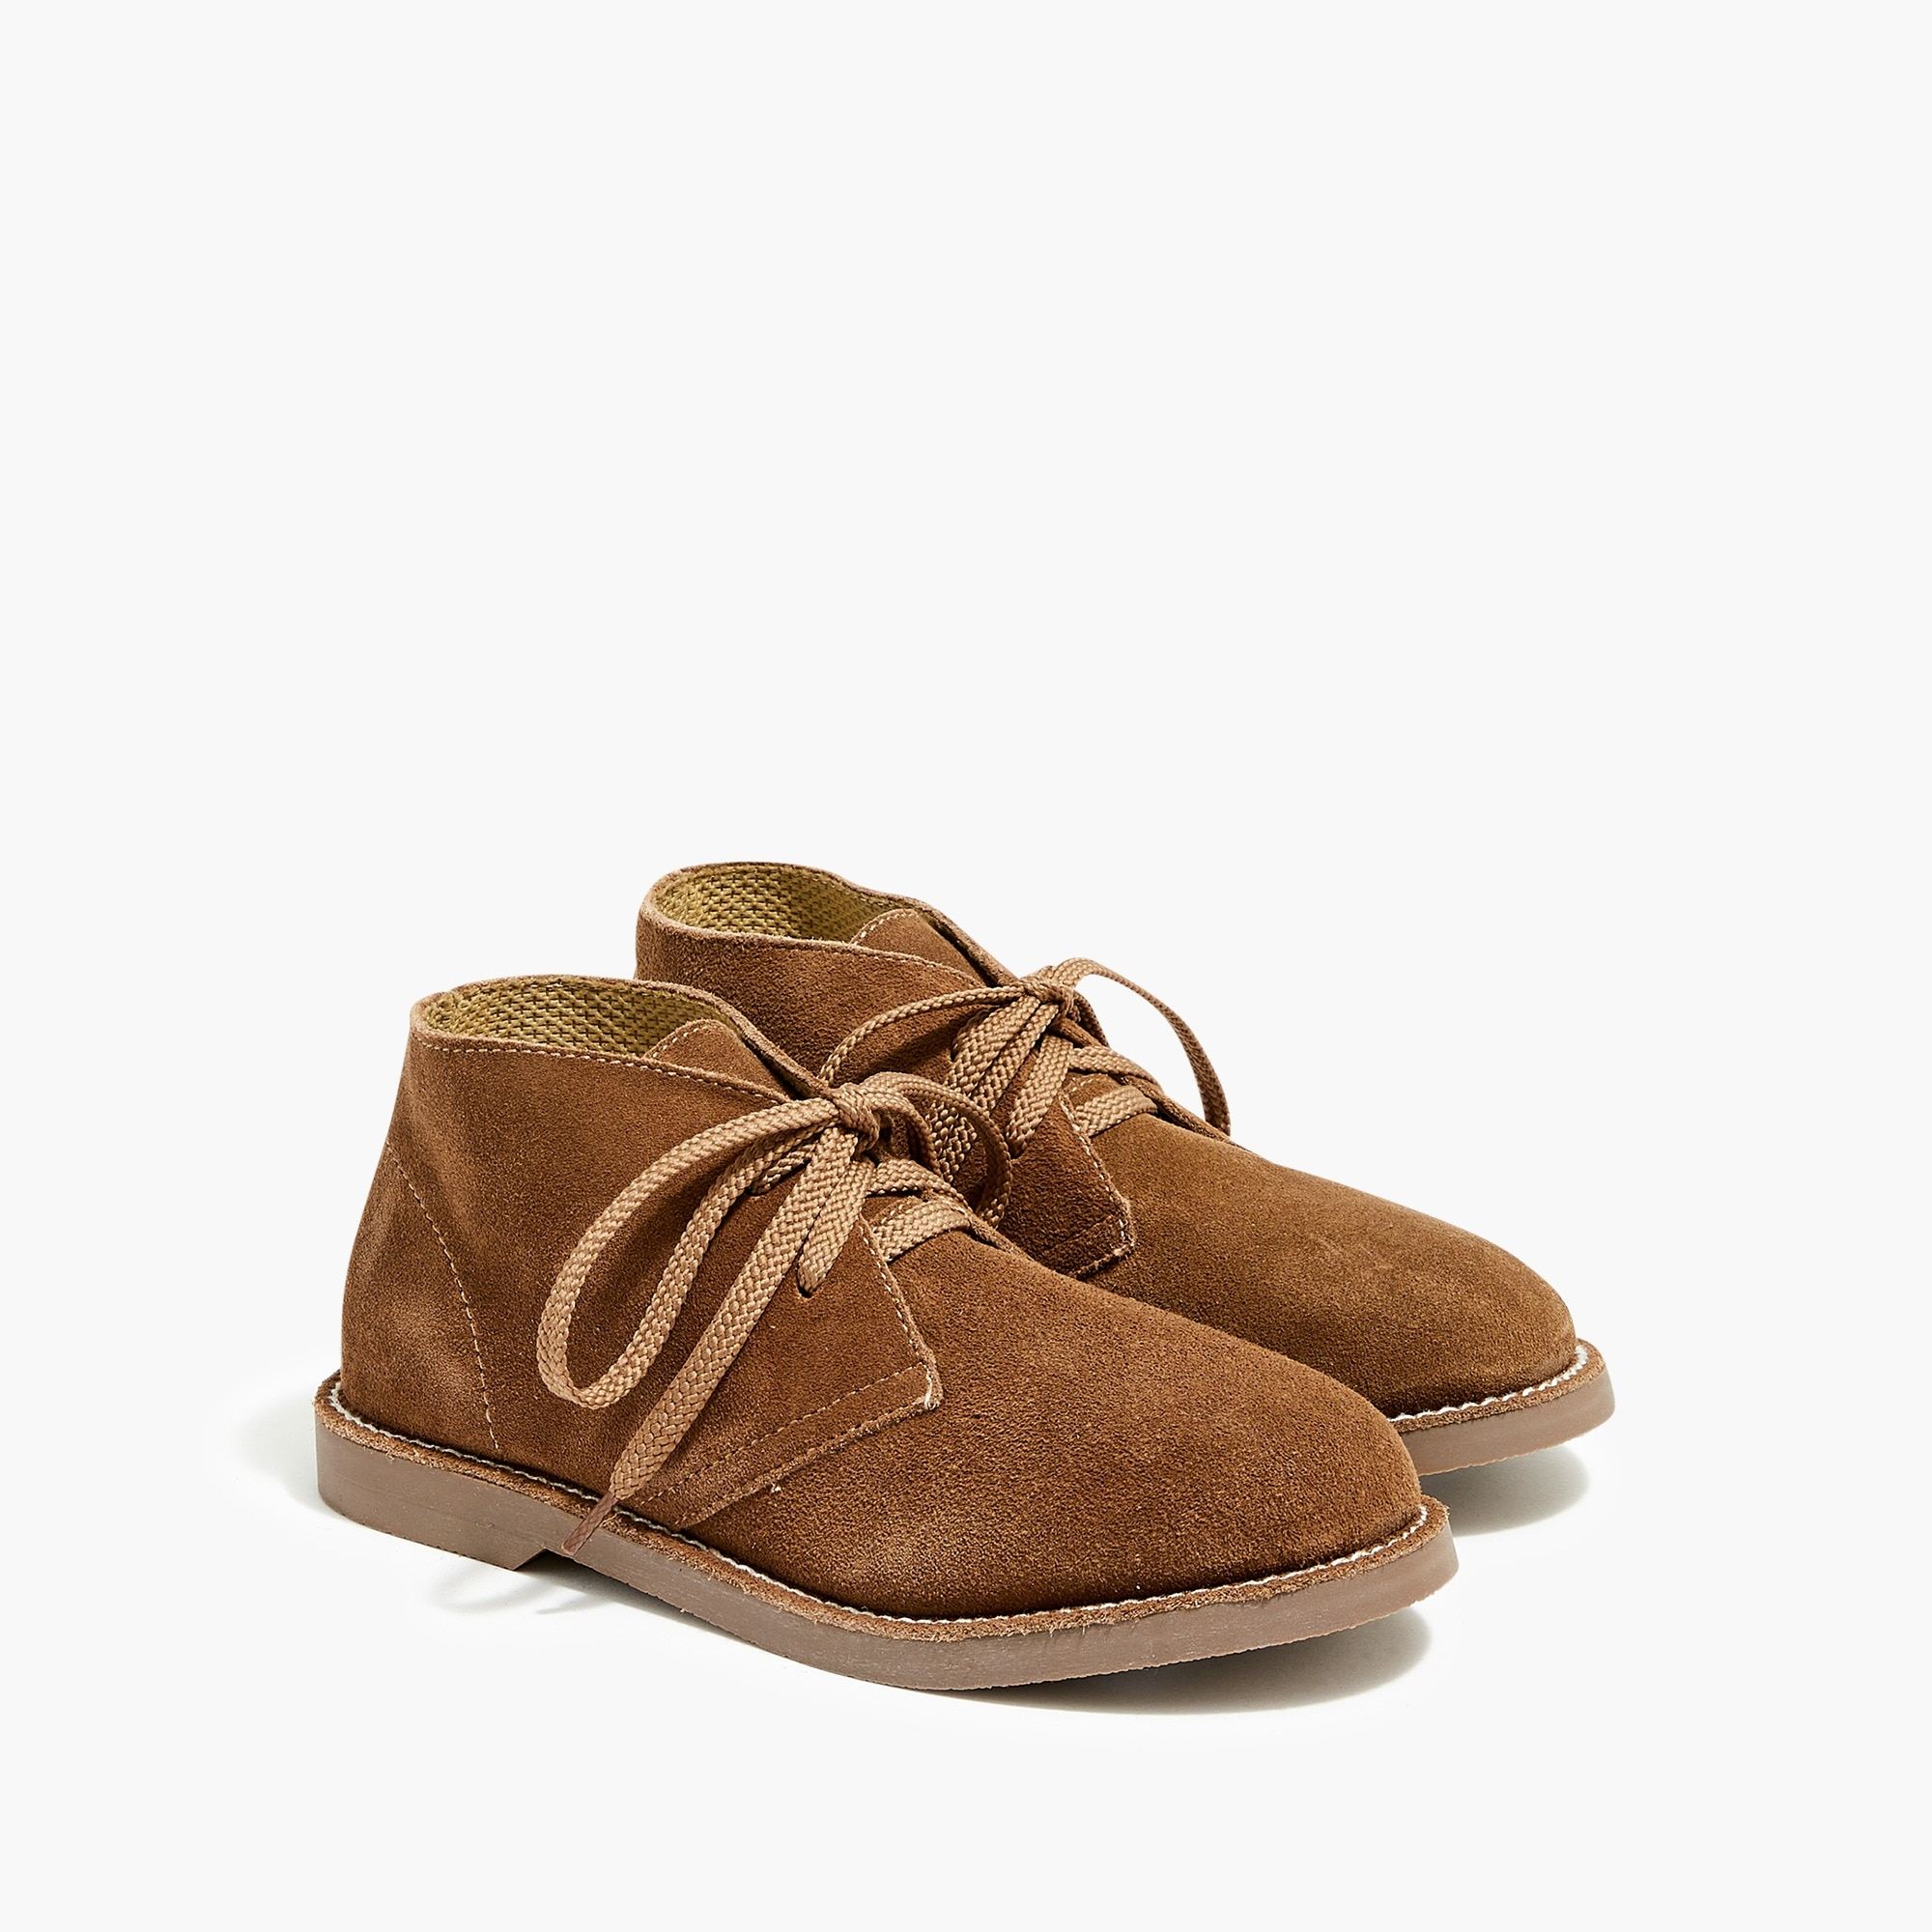 factory boys Kids' Calvert boots